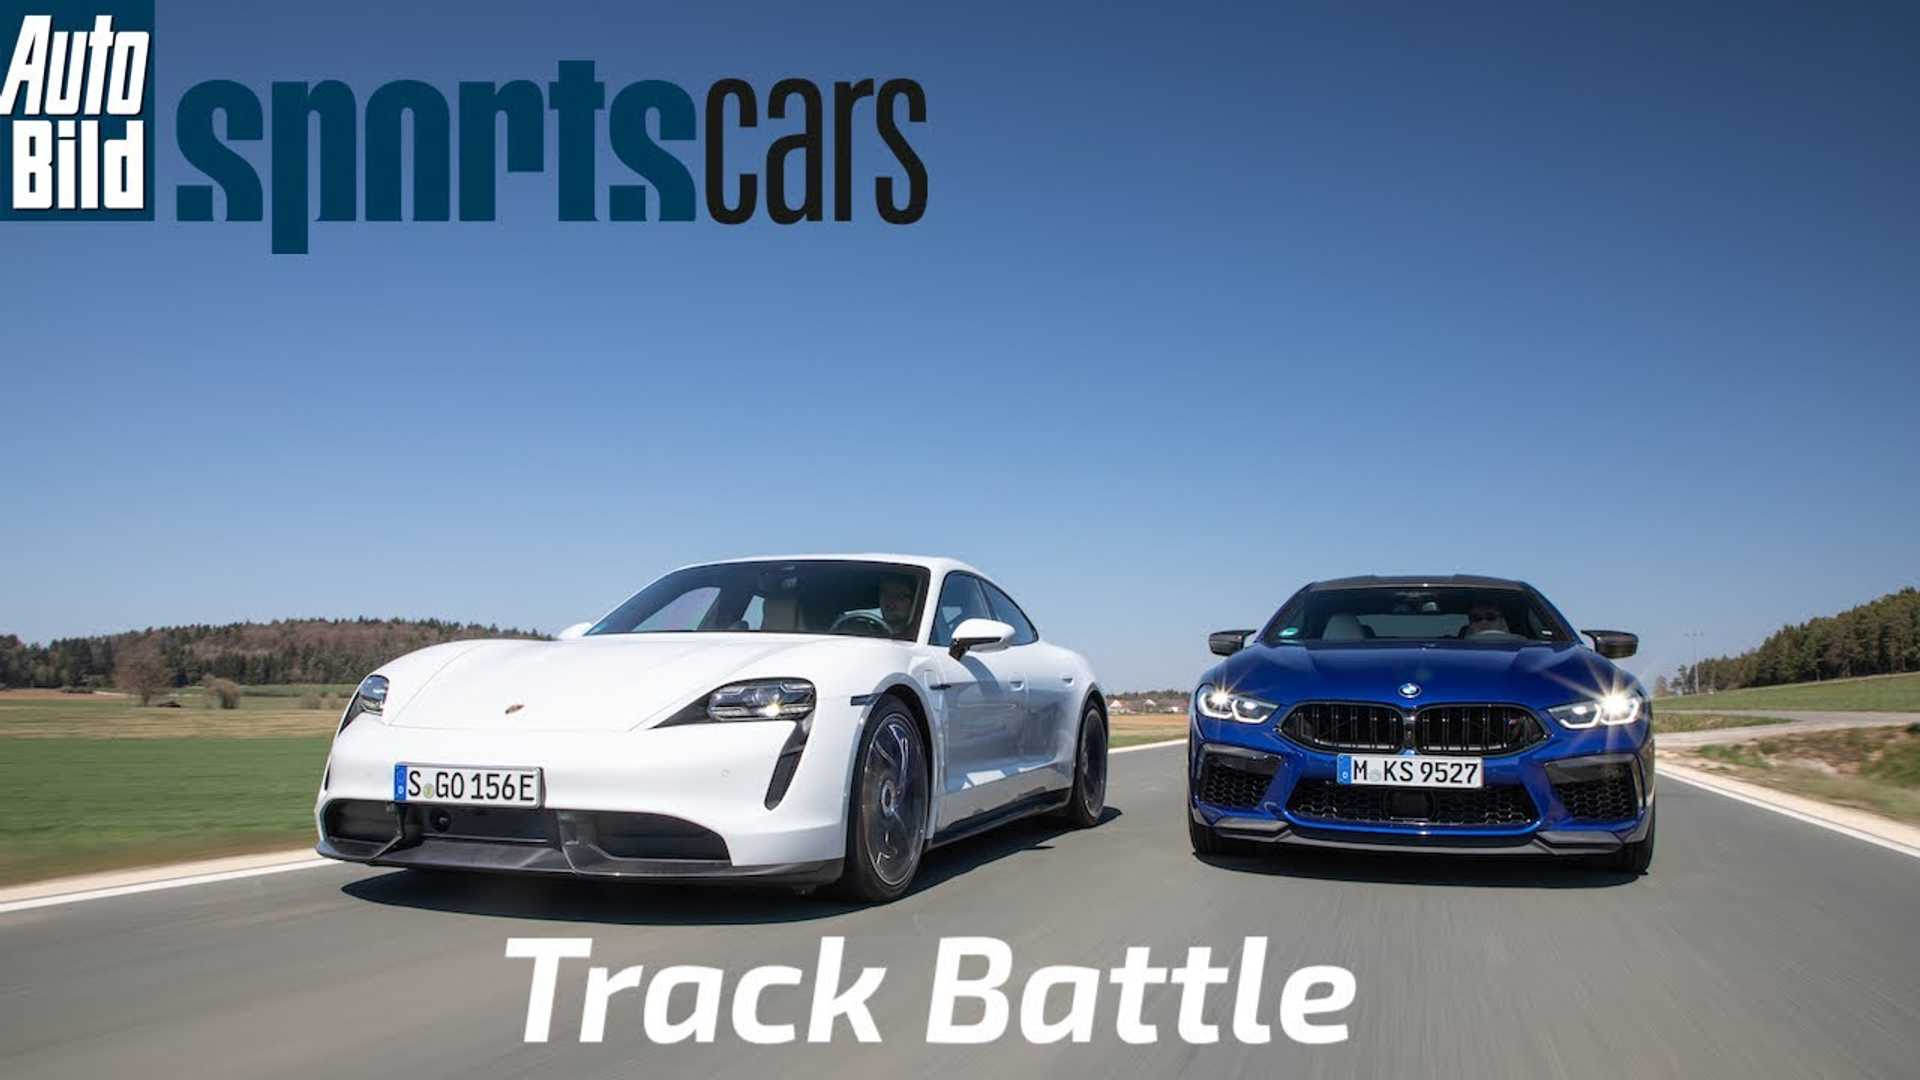 In its latest YouTube video, AutoBildSportsCars pits the electric Porsche Taycan Turbo S up against the gasoline-powered BMW M8 Gran Coupe Competition on EuroSpeedway Lausitz.